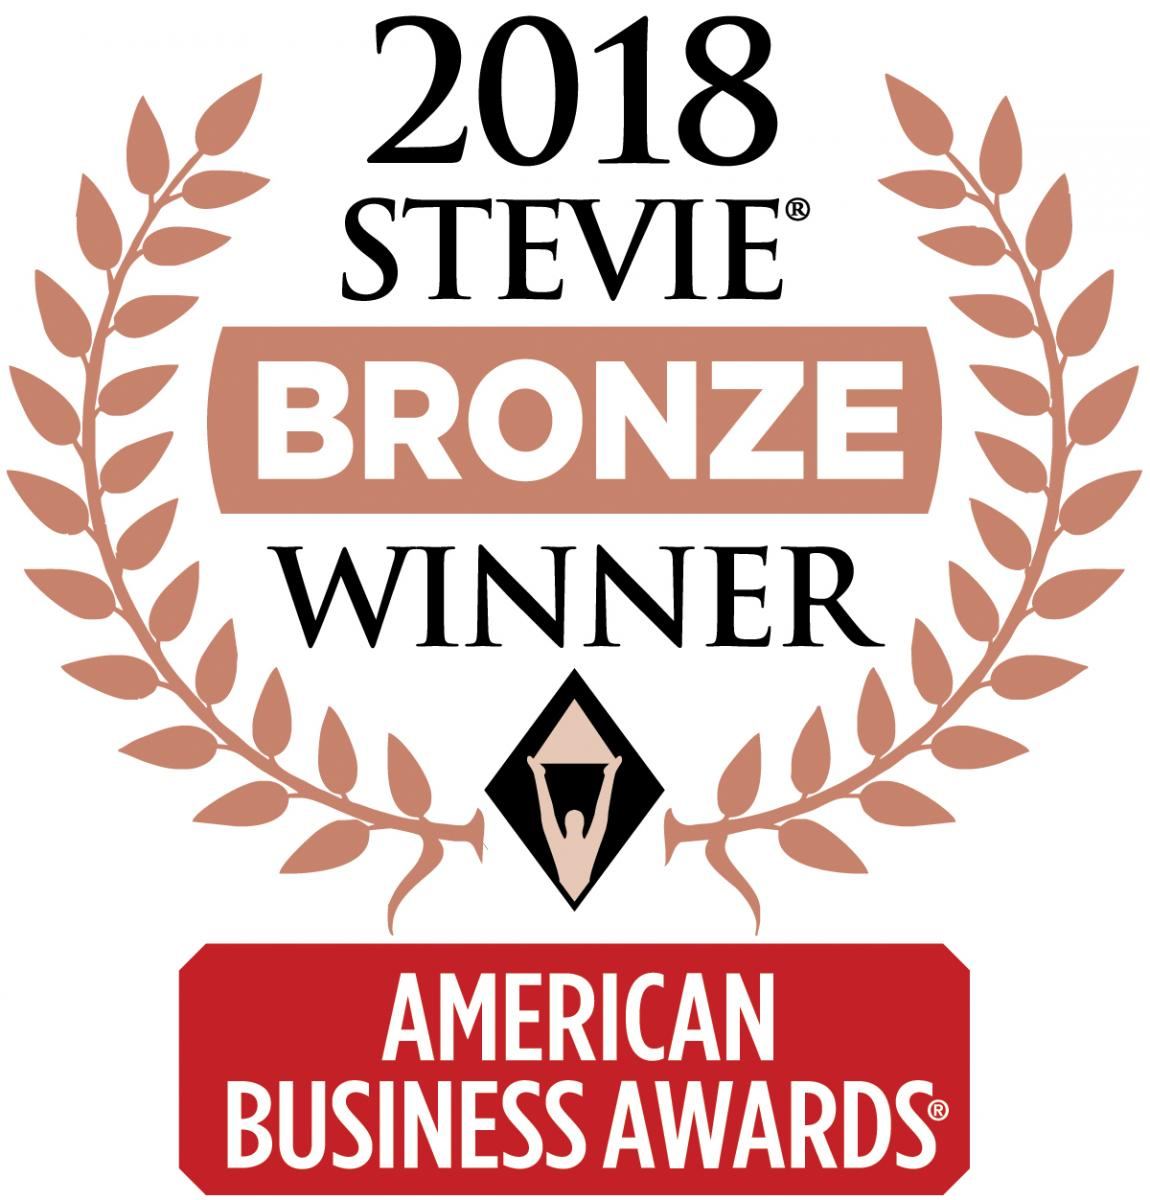 Contrast Assess wins the Bronze Stevie Award for